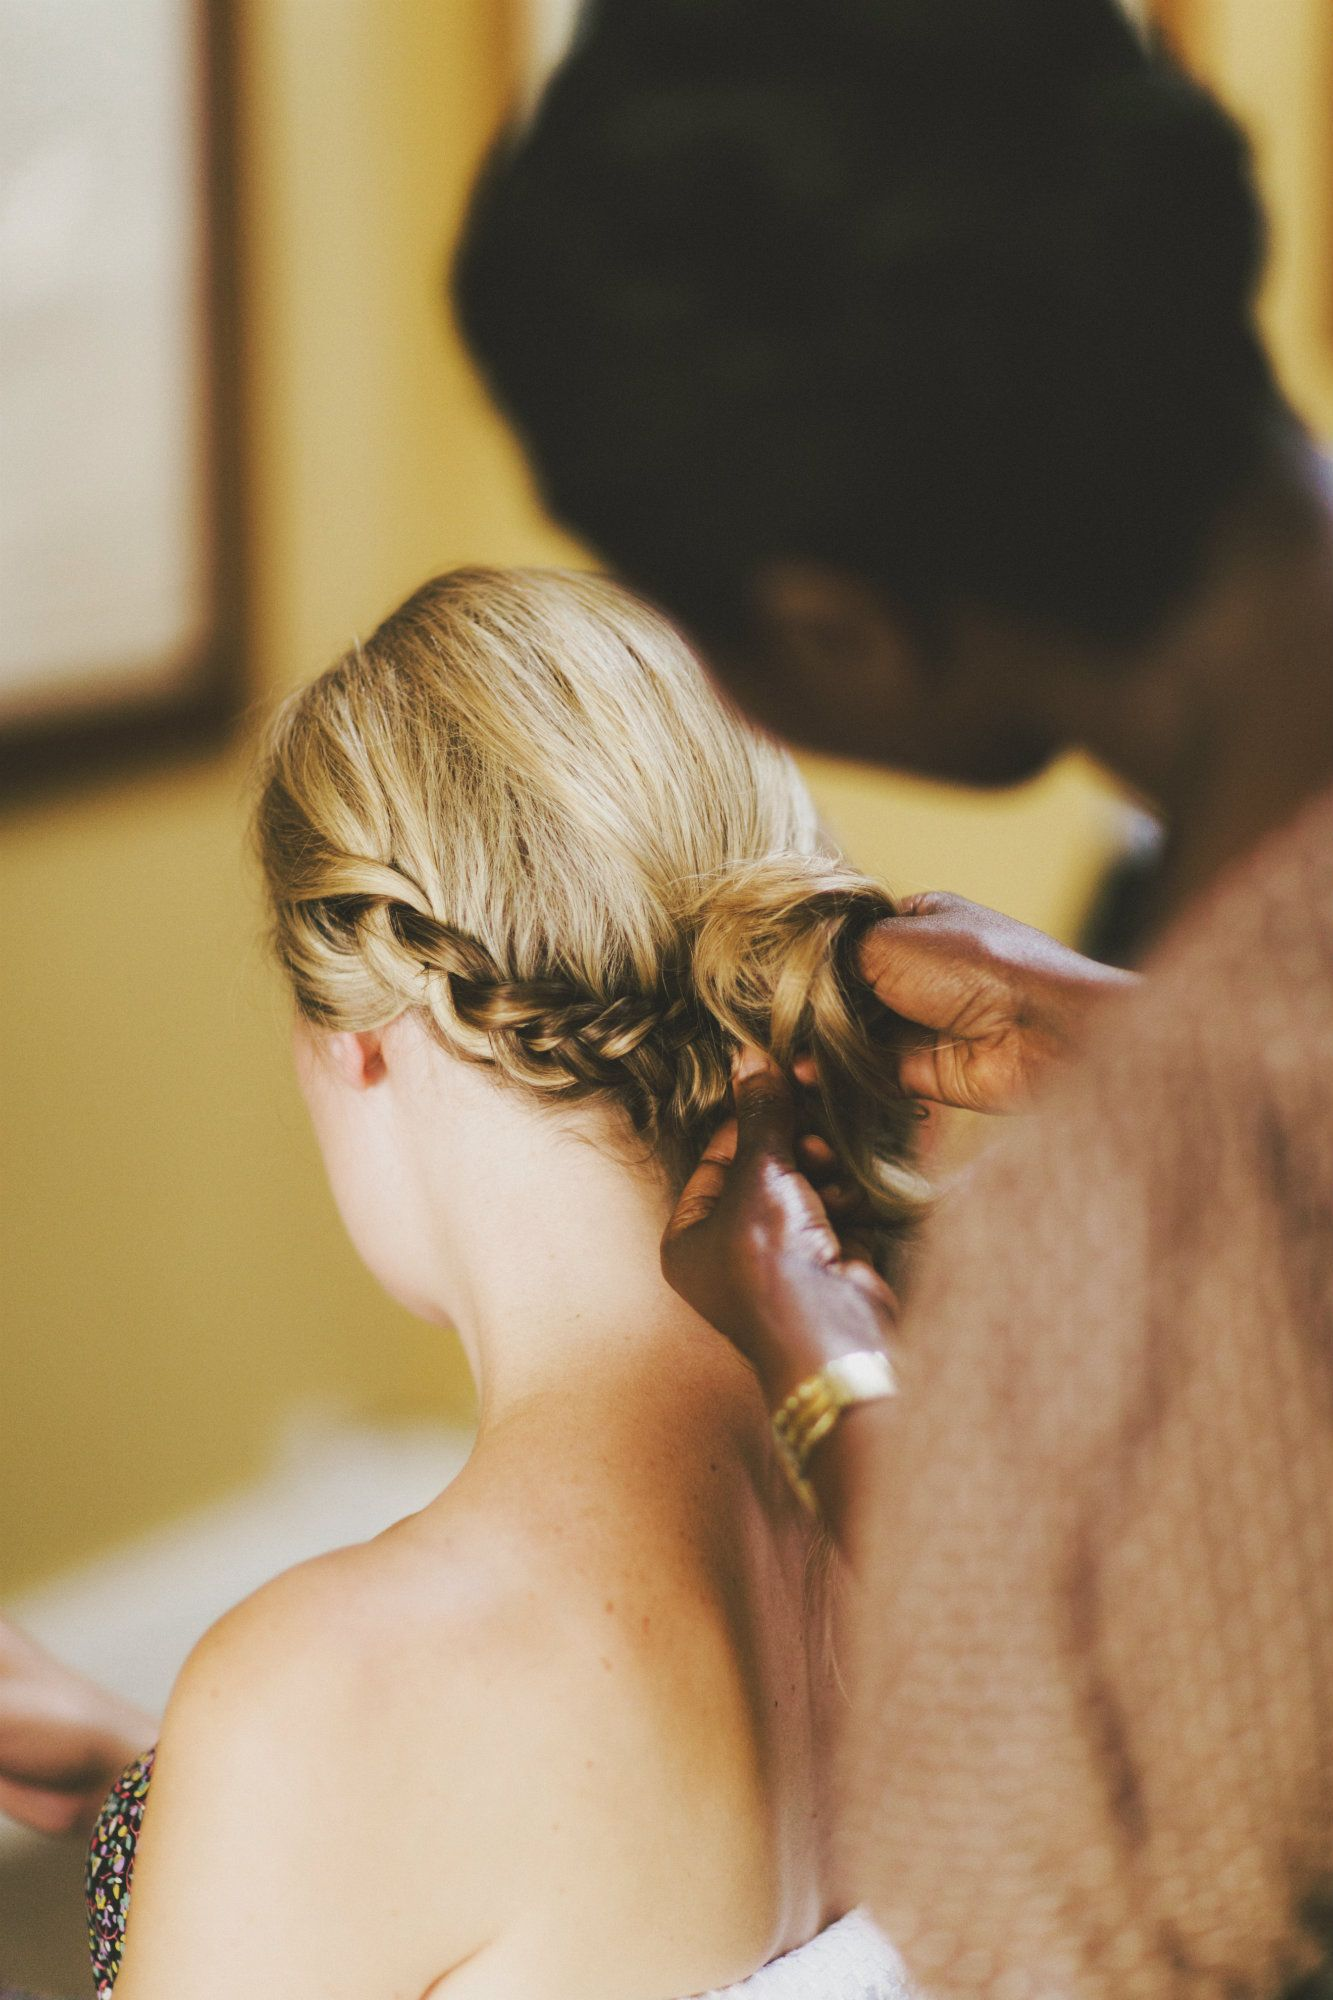 Gloucestershire-Wedding-bridal-hairstylist-UK-ELN(2).2